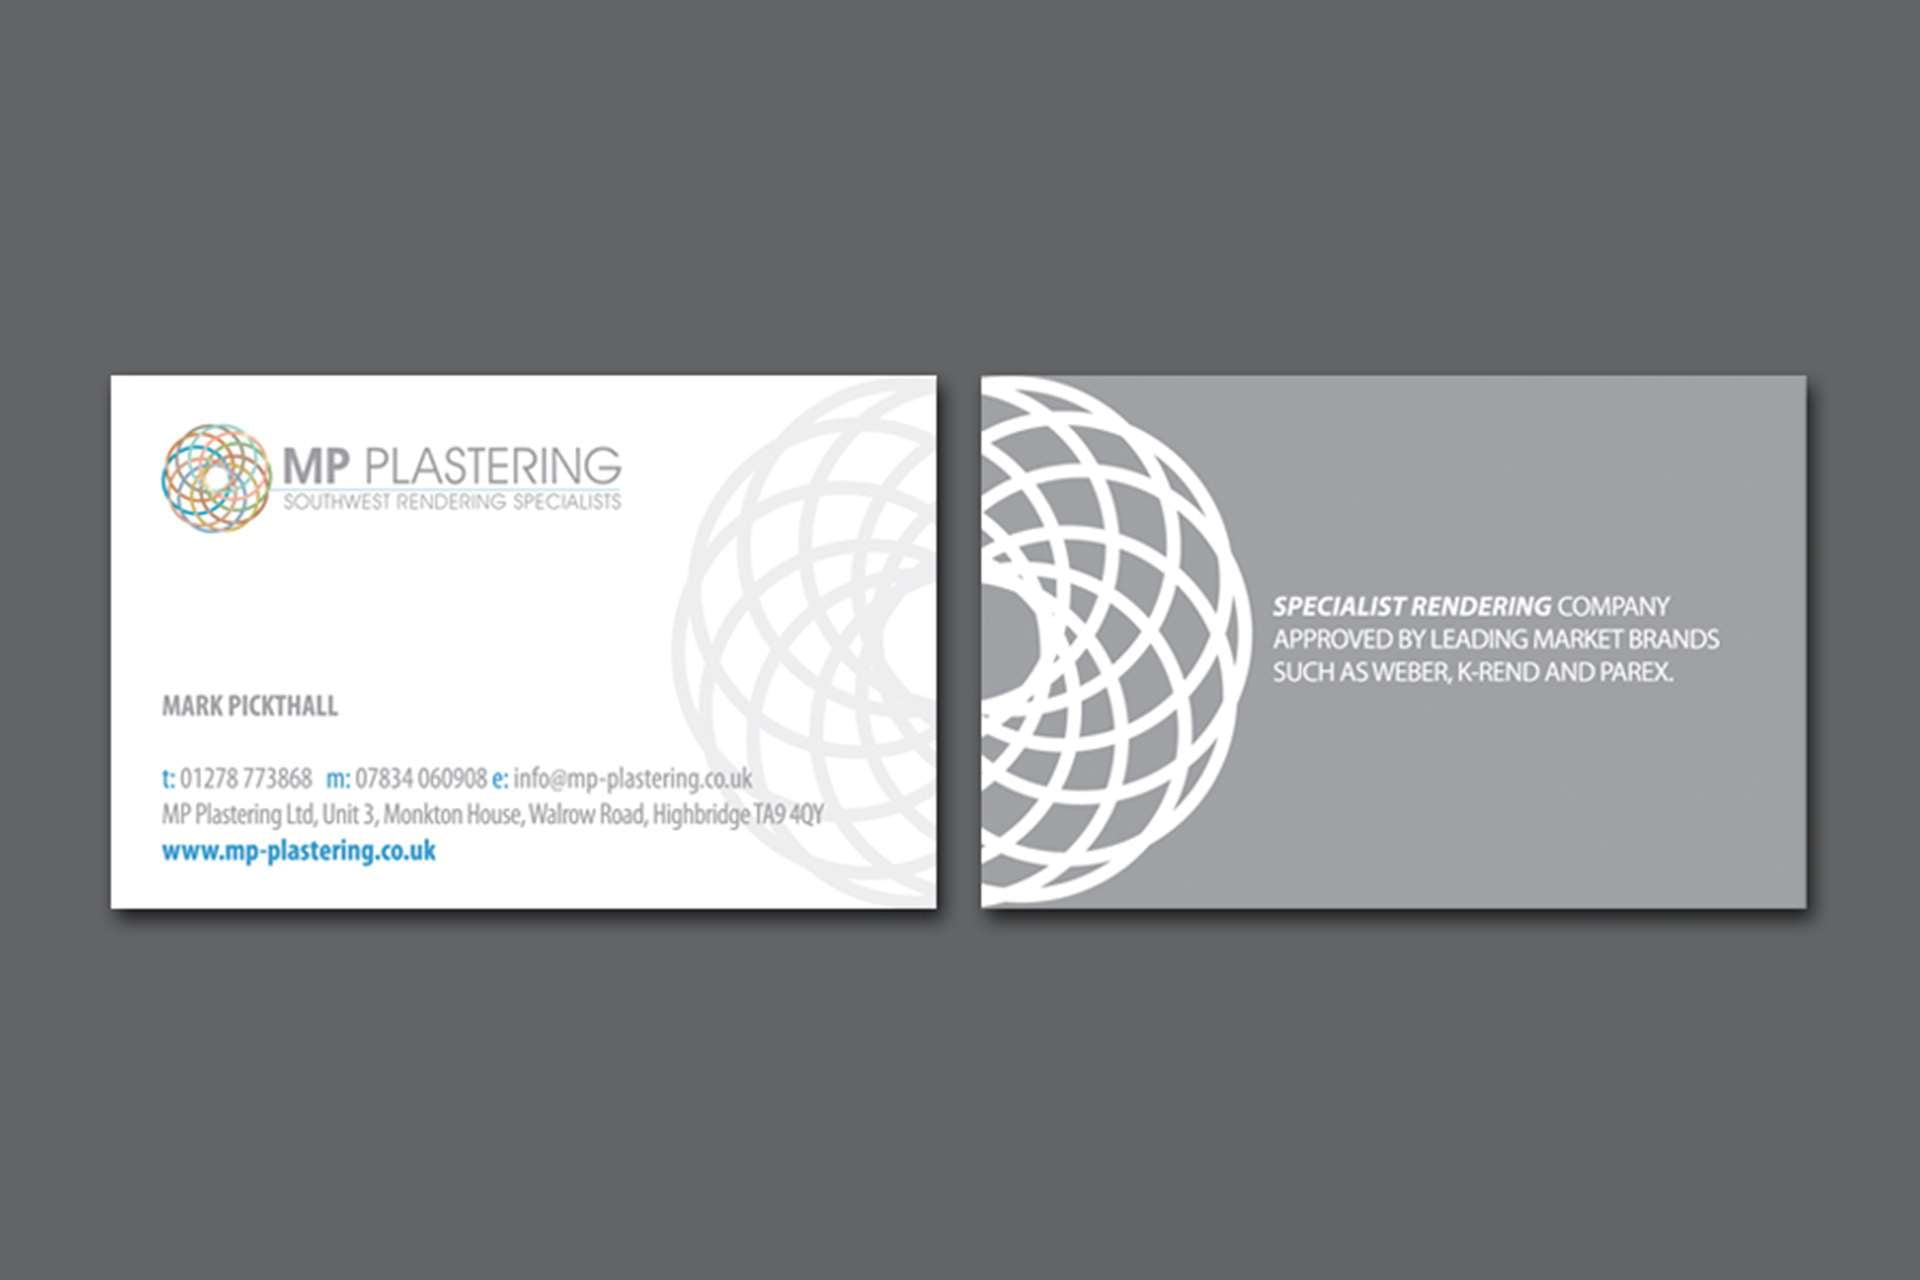 Business Card design for MP Plastering in Highbridge, Somerset